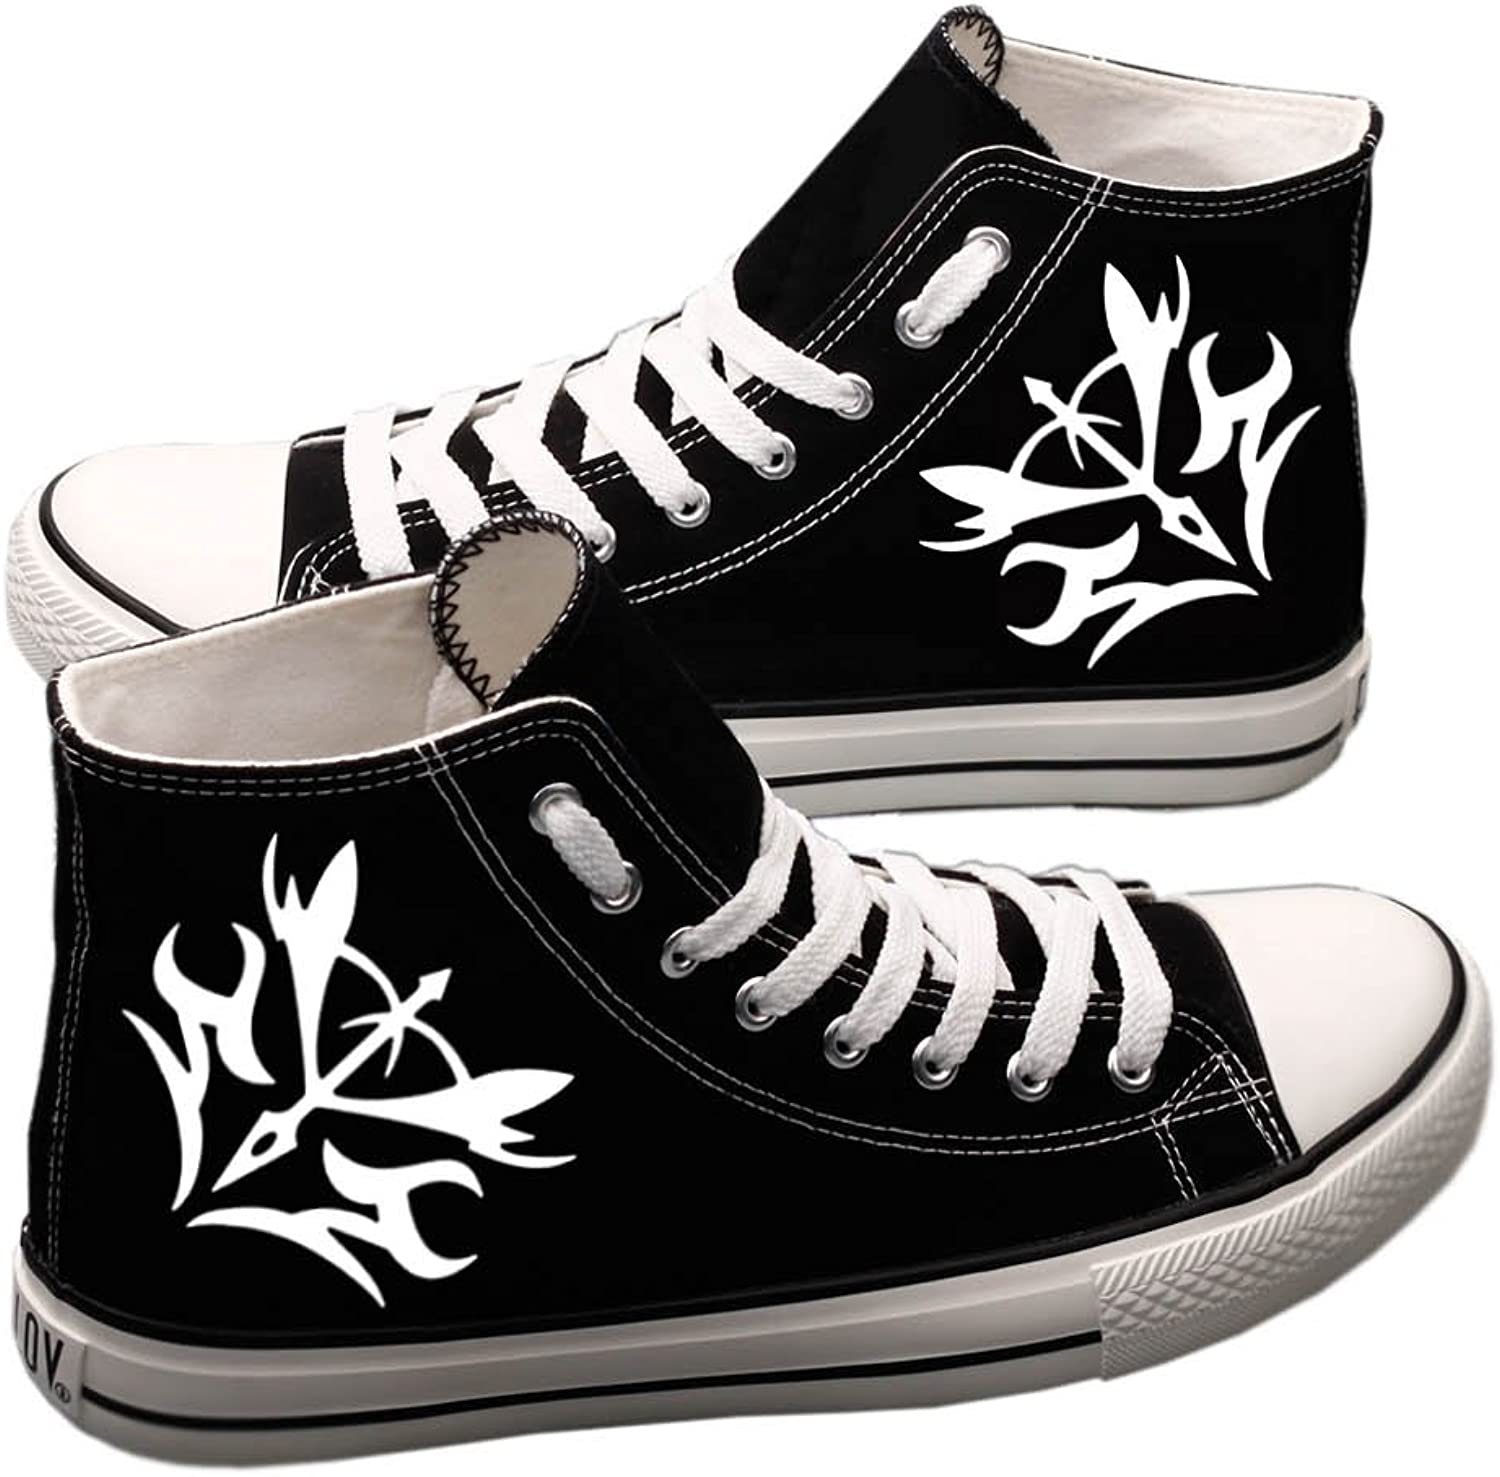 E_LOV Fate Zero Anime Logo Hand-Painted Canvas shoes High Top Sneakers Cosplay shoes for Women Black